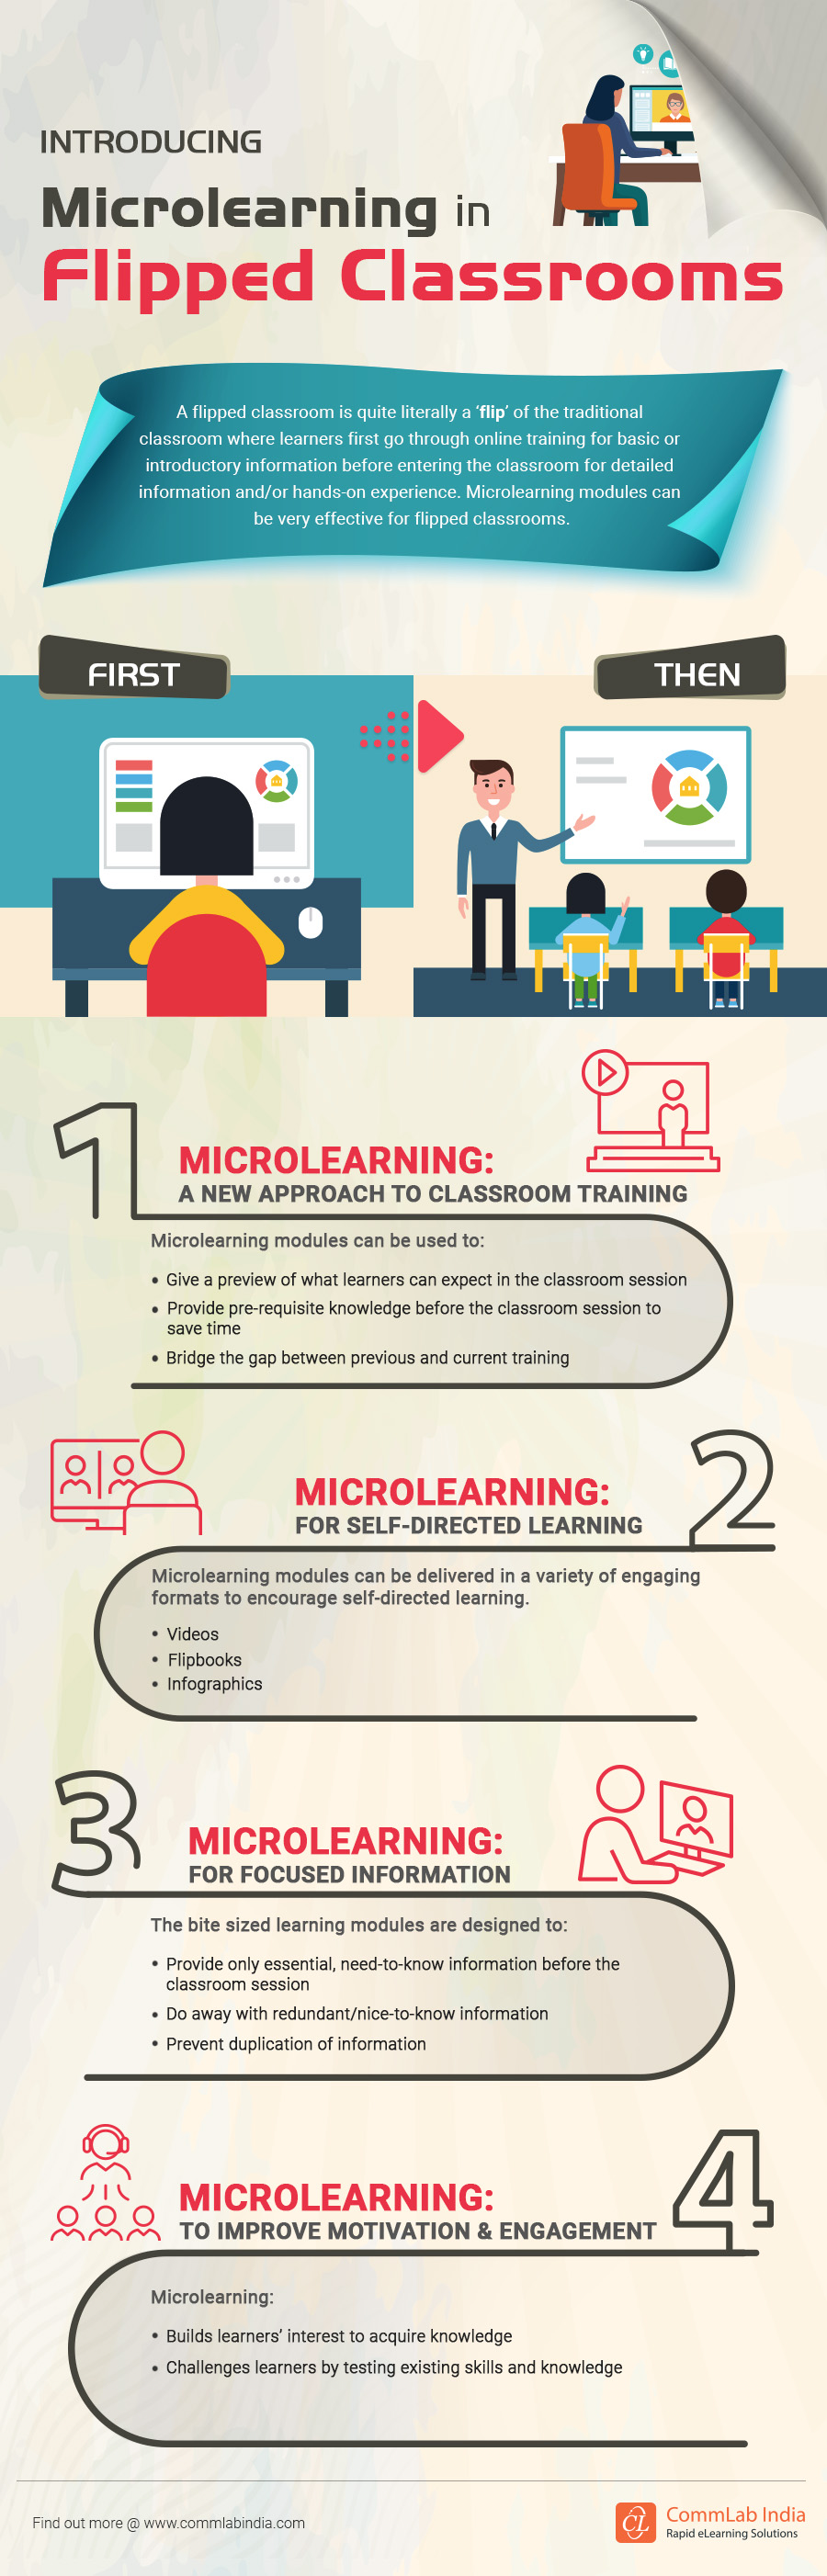 Microlearning Modules to Enrich Your Flipped Classroom Sessions